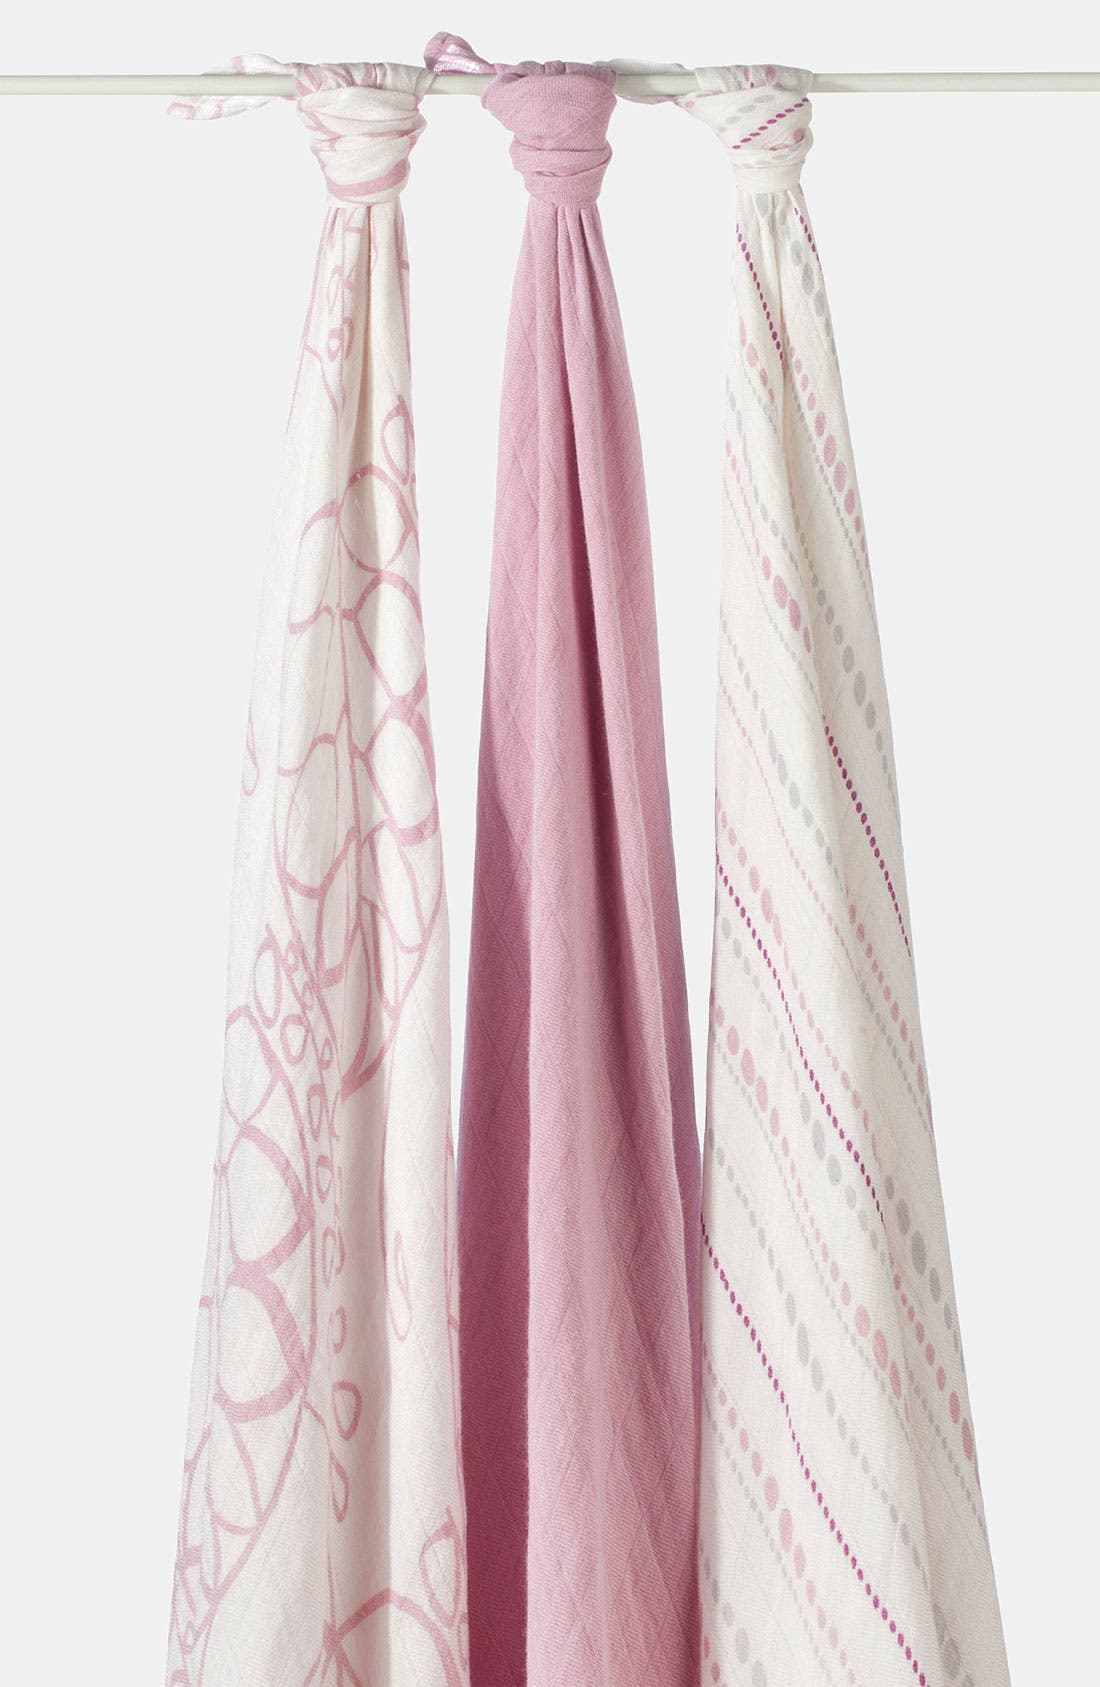 aden + anais Swaddling Cloths, 3-Pack